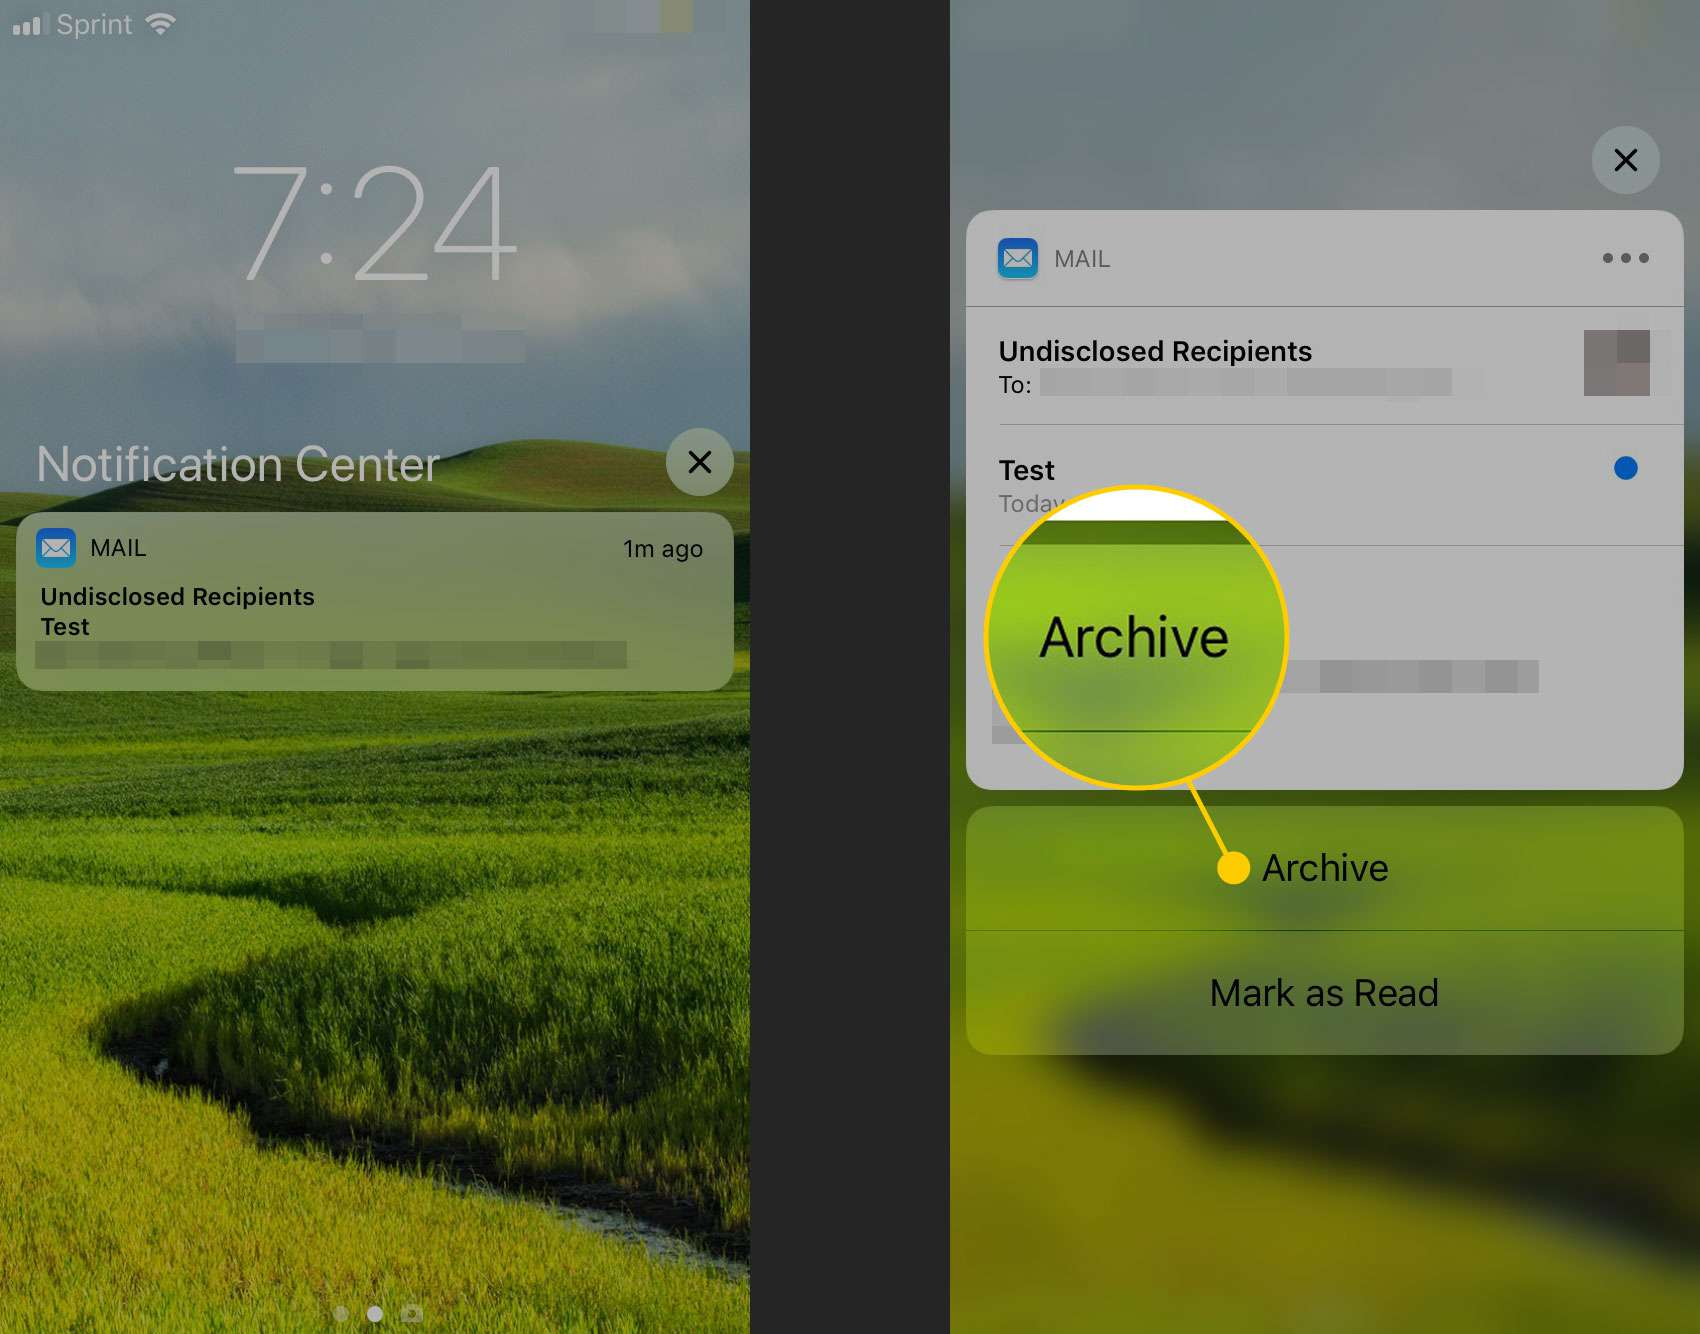 Archiving an email from an alert in the Notification Center